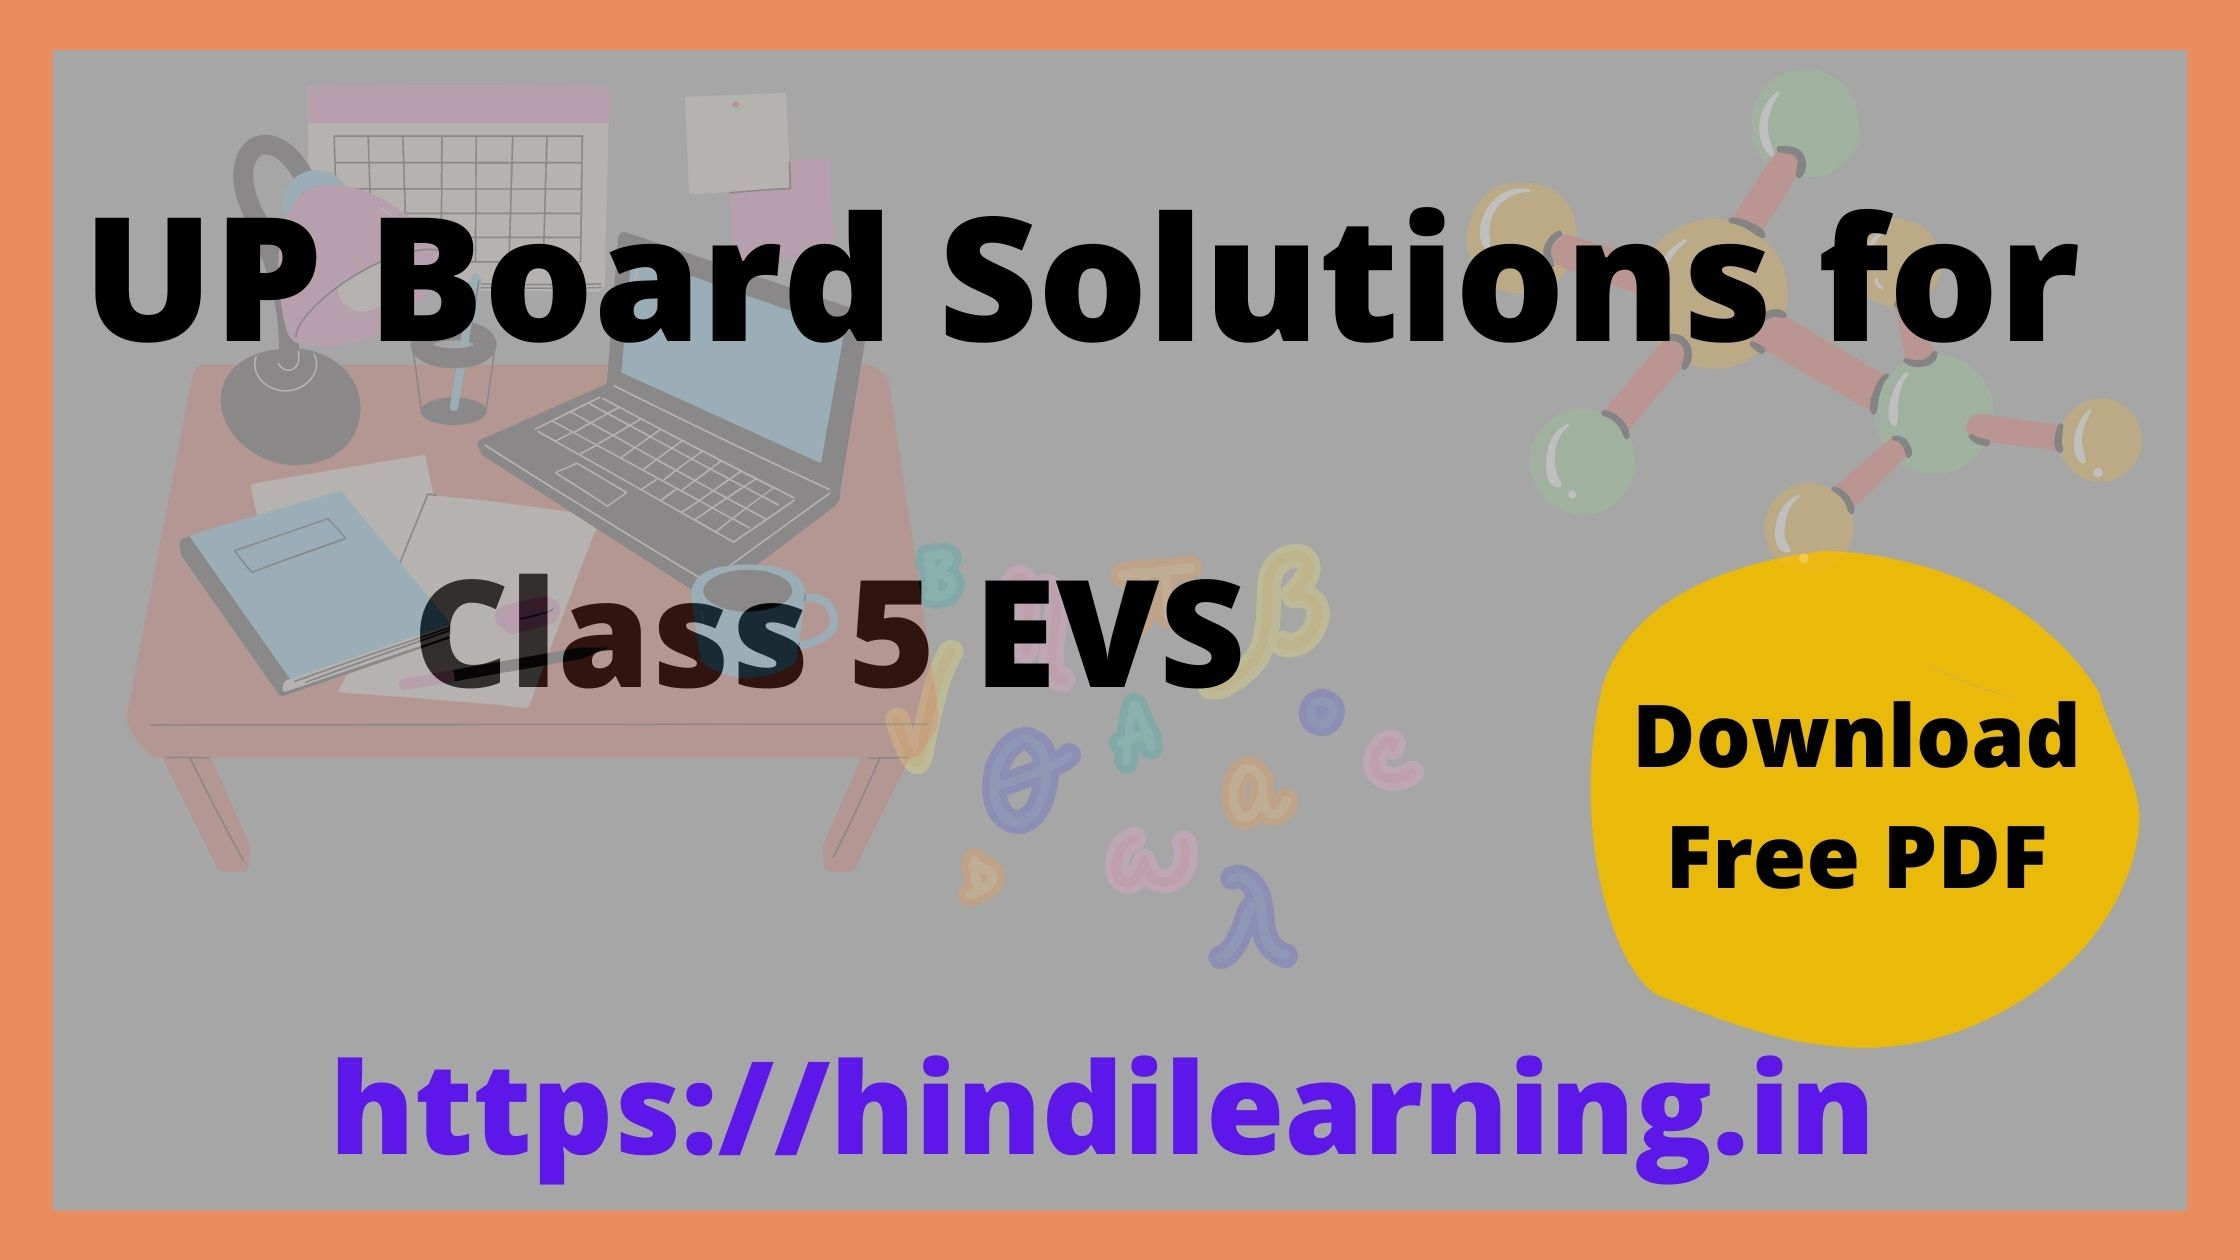 UP Board Solutions for Class 5 Environmental Studies